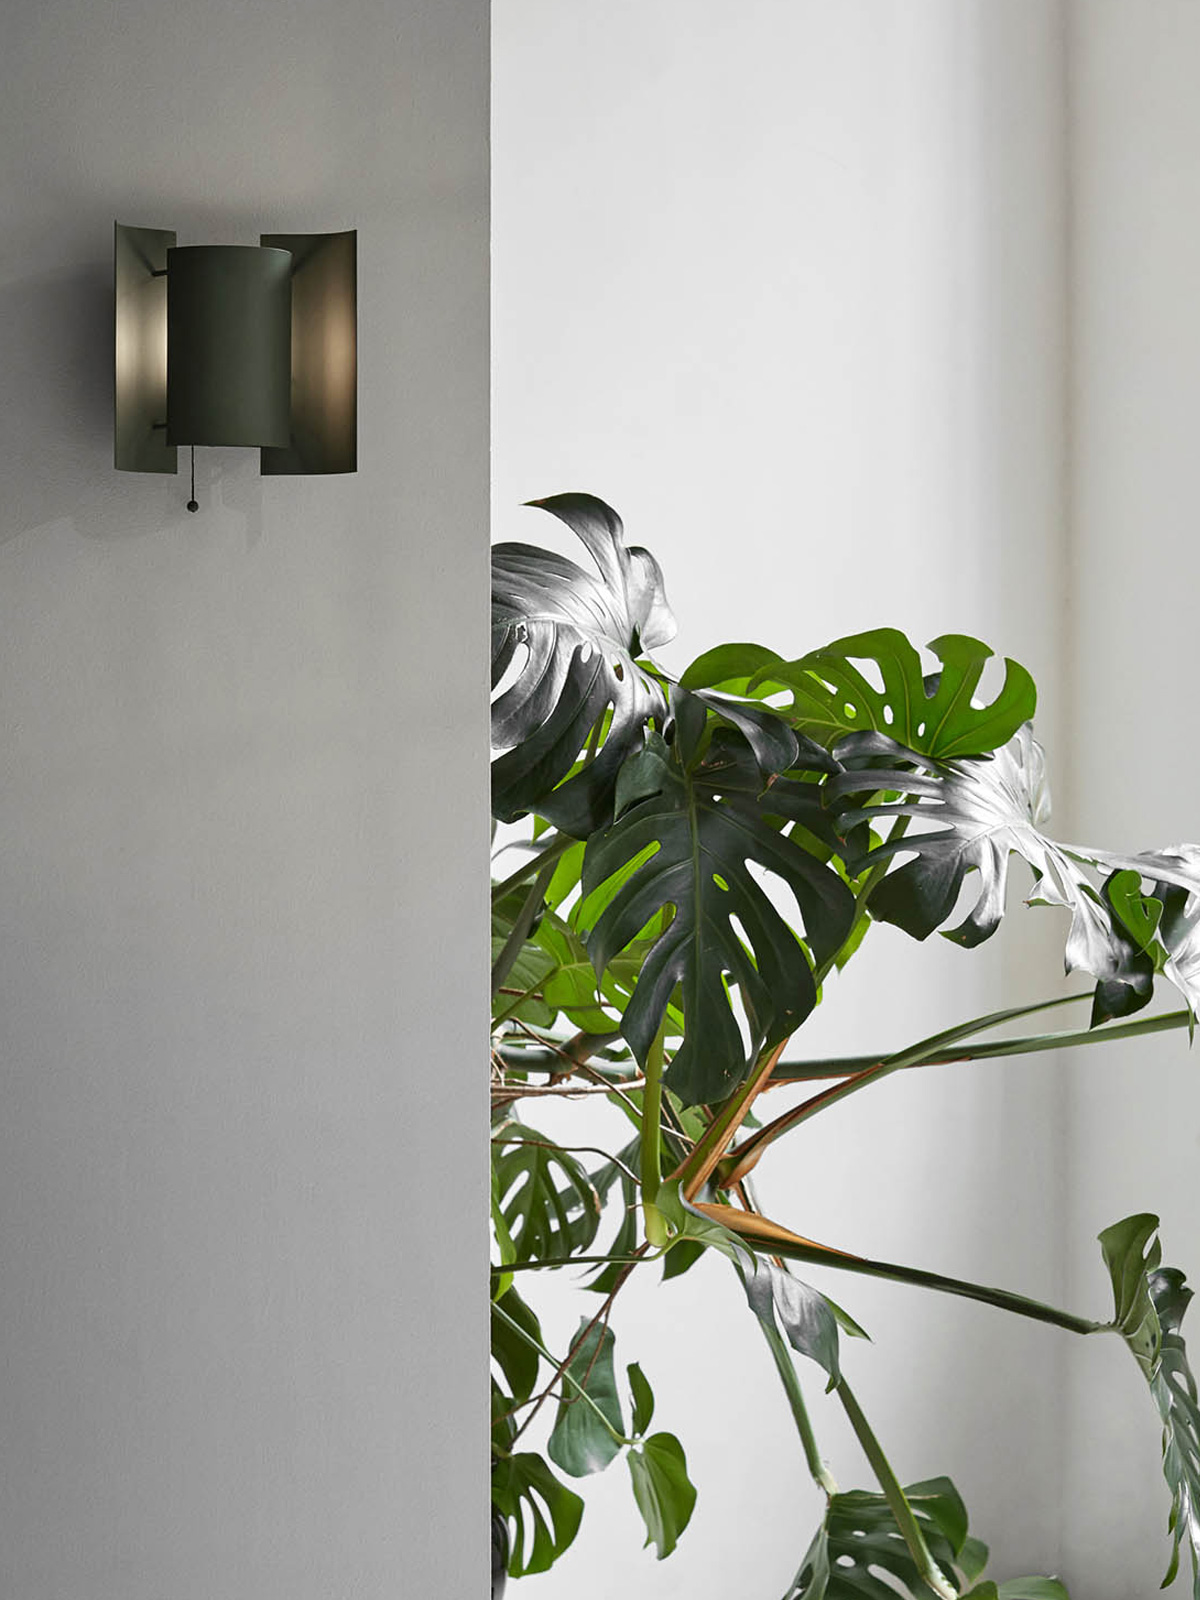 Butterfly Wandleuchte Northern Lighting skandinavisch Lampe Onlineshop DesignOrt Berlin